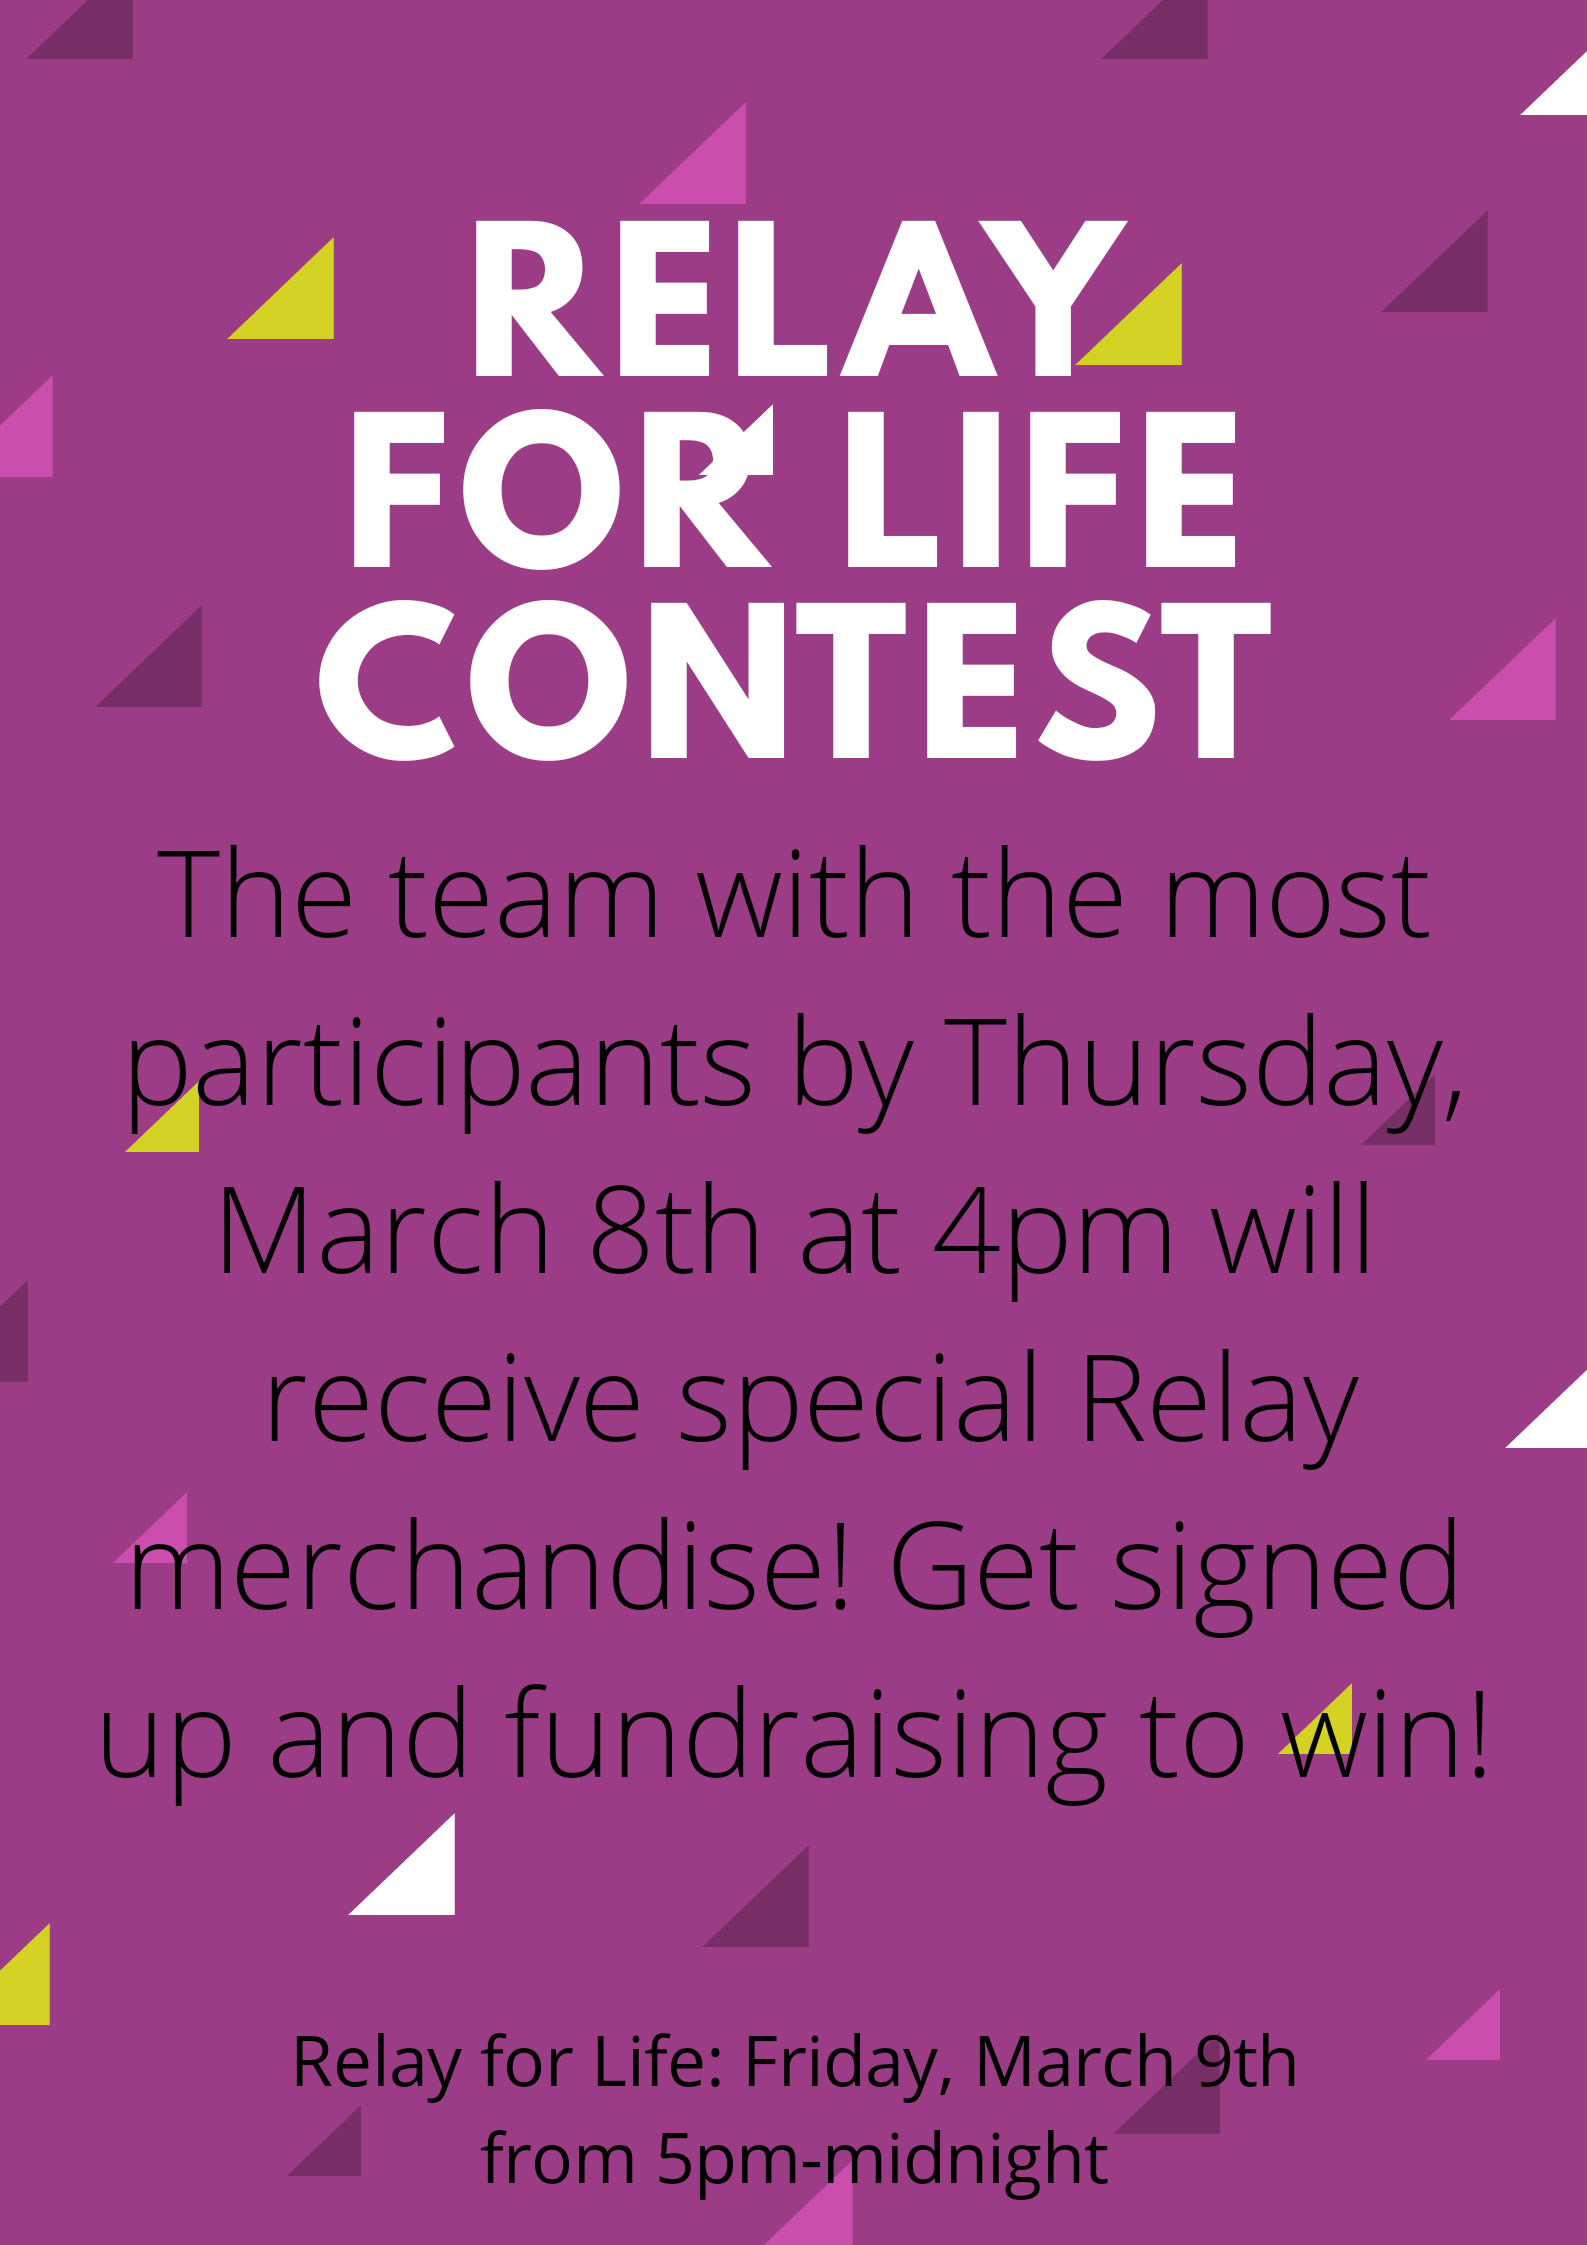 relay-for-life-contest.jpg